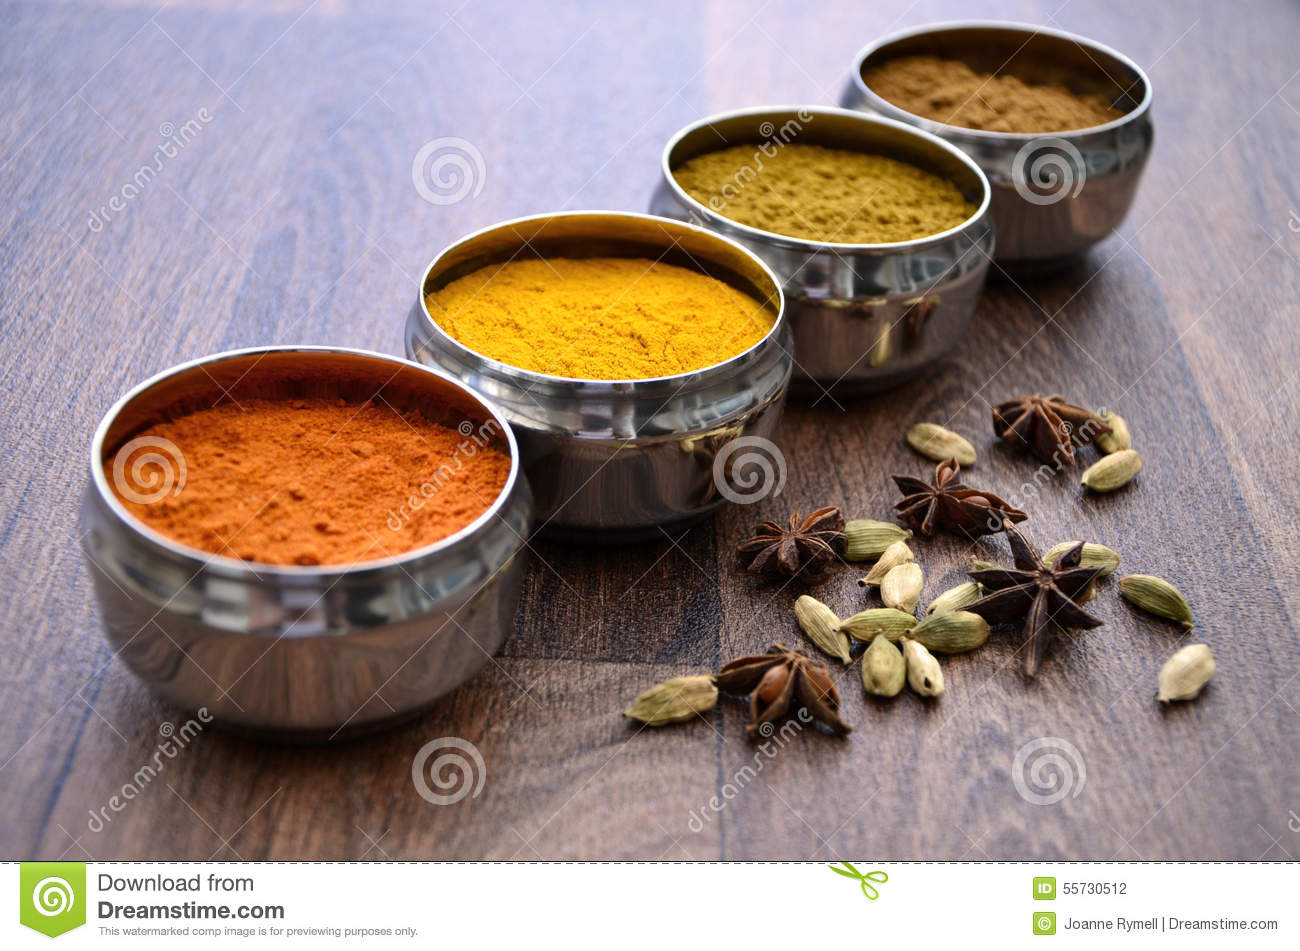 Silver indian spice pots on wood stock photo image 55730512 for 4 spice indian cuisine